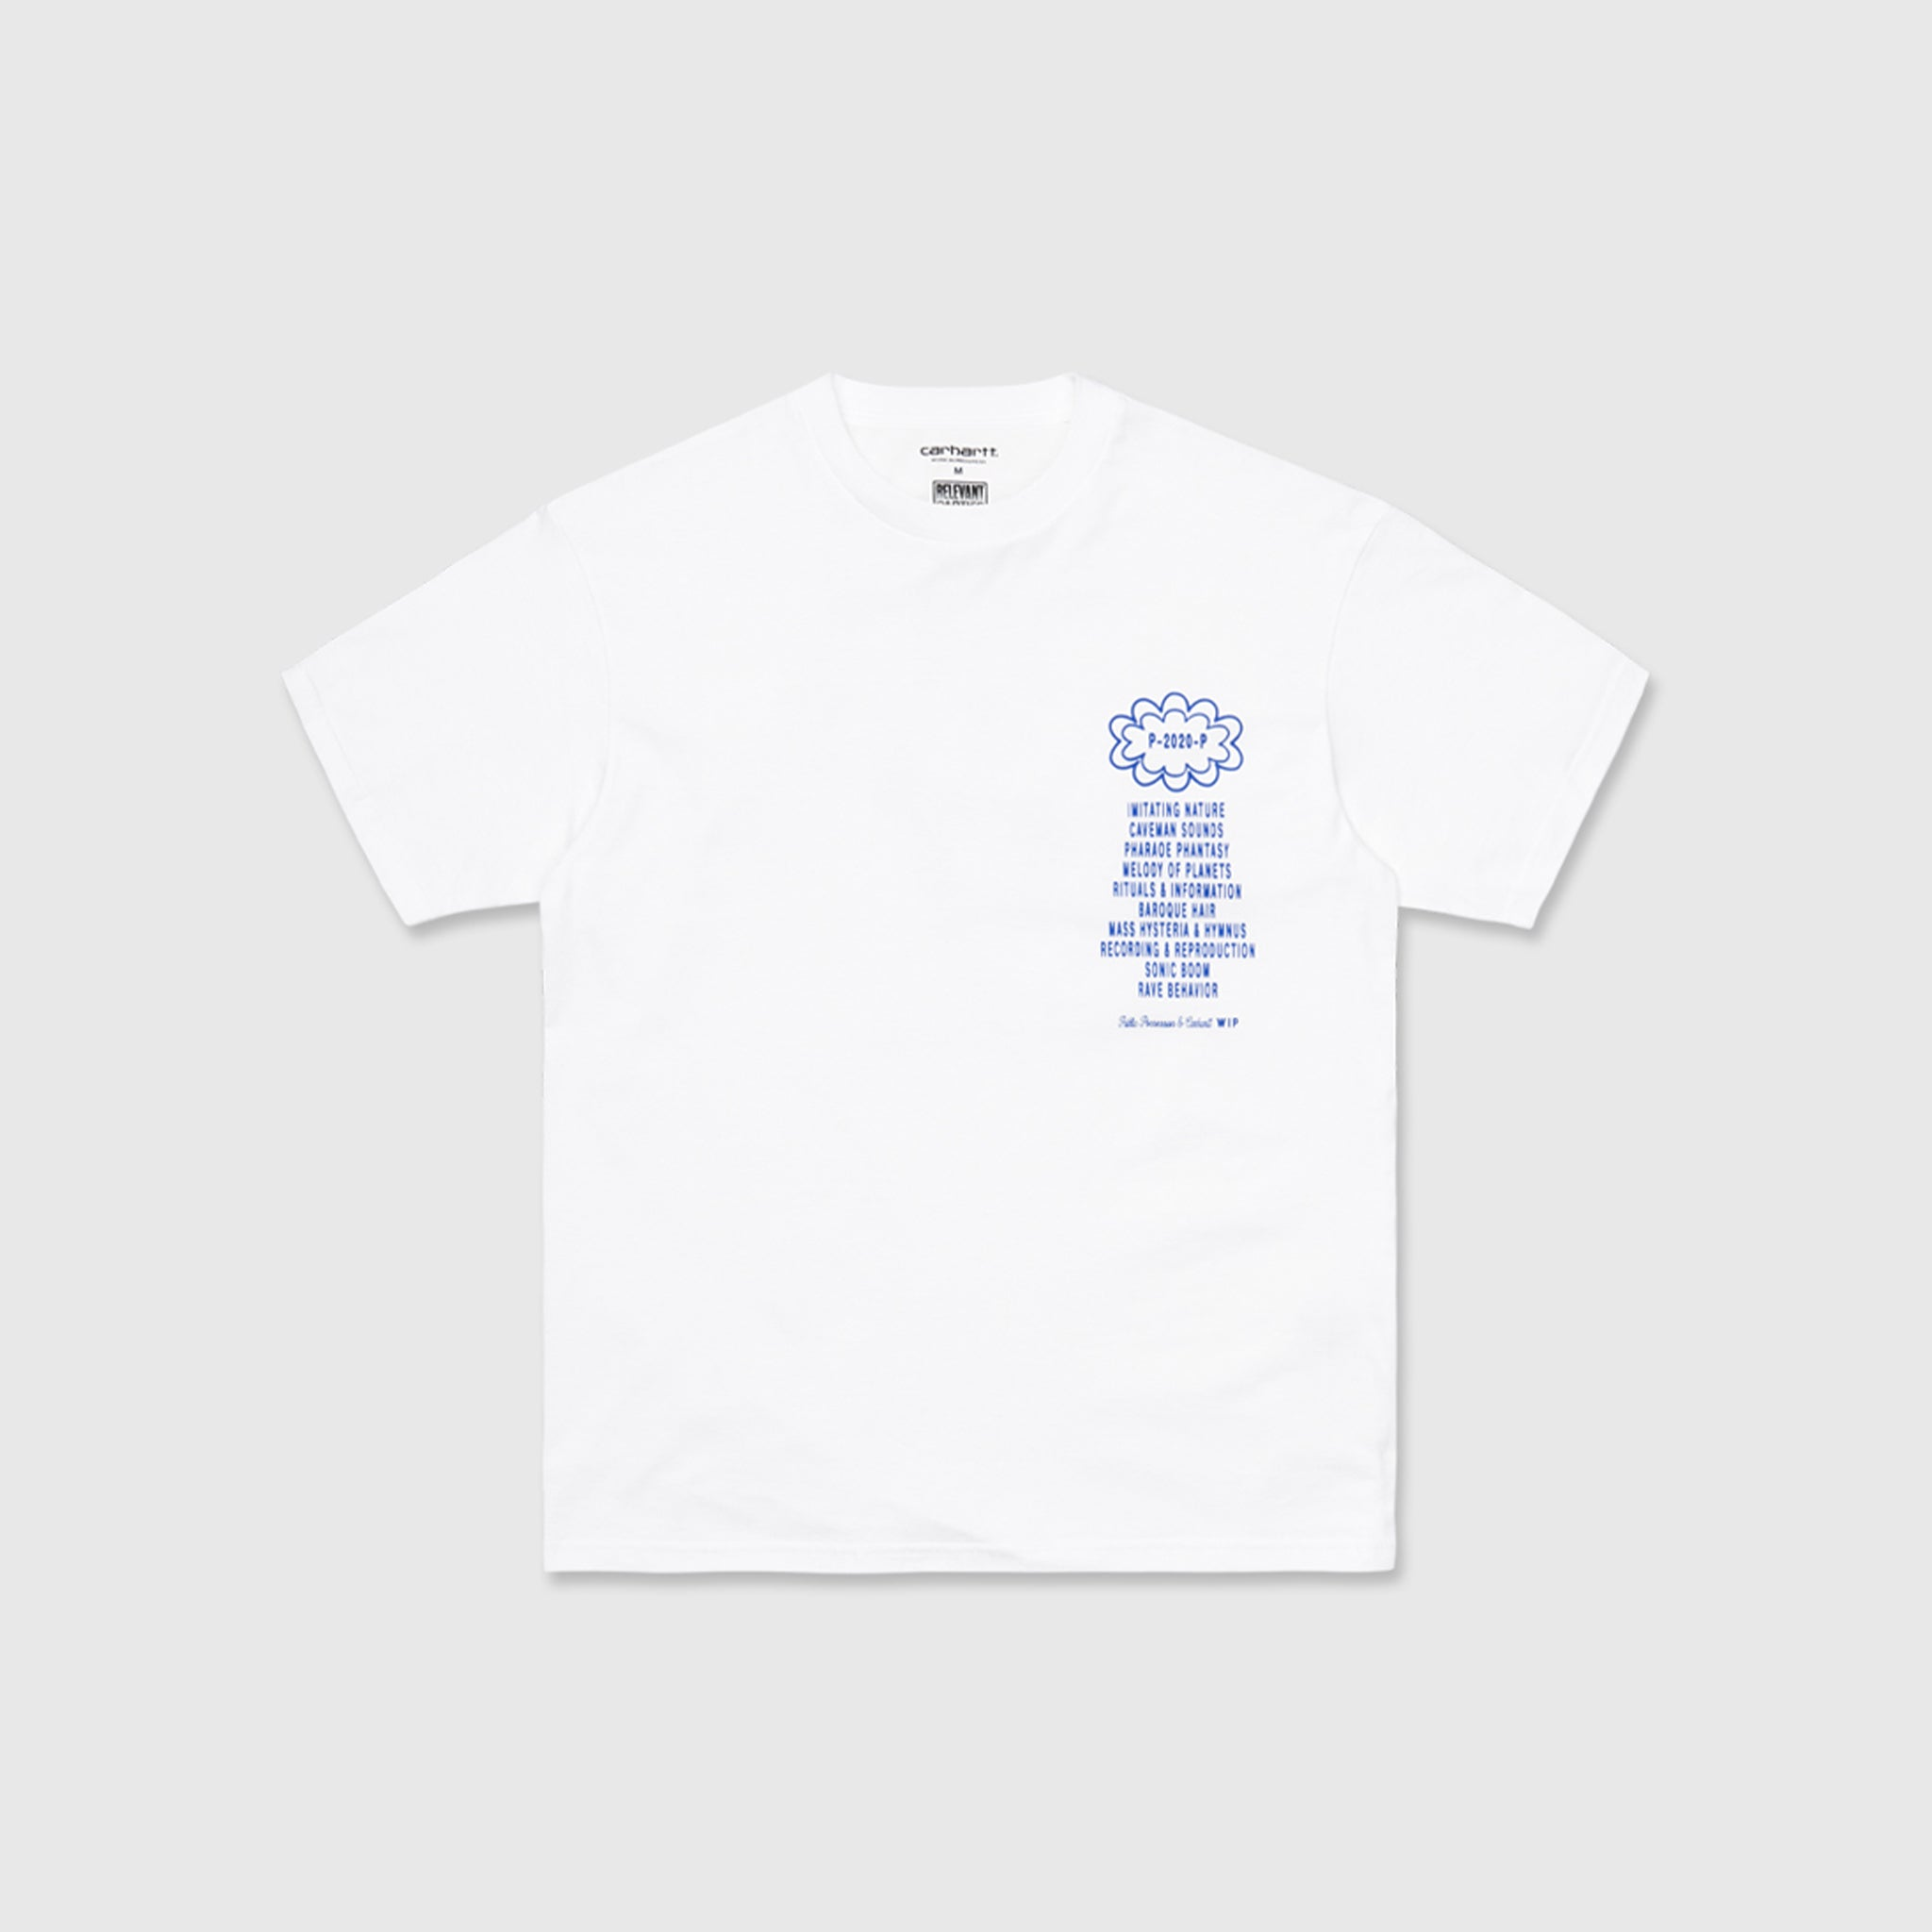 CARHARTT WIP X RELEVANT PARTIES PUBLIC POSSESSION S/S T-SHIRT